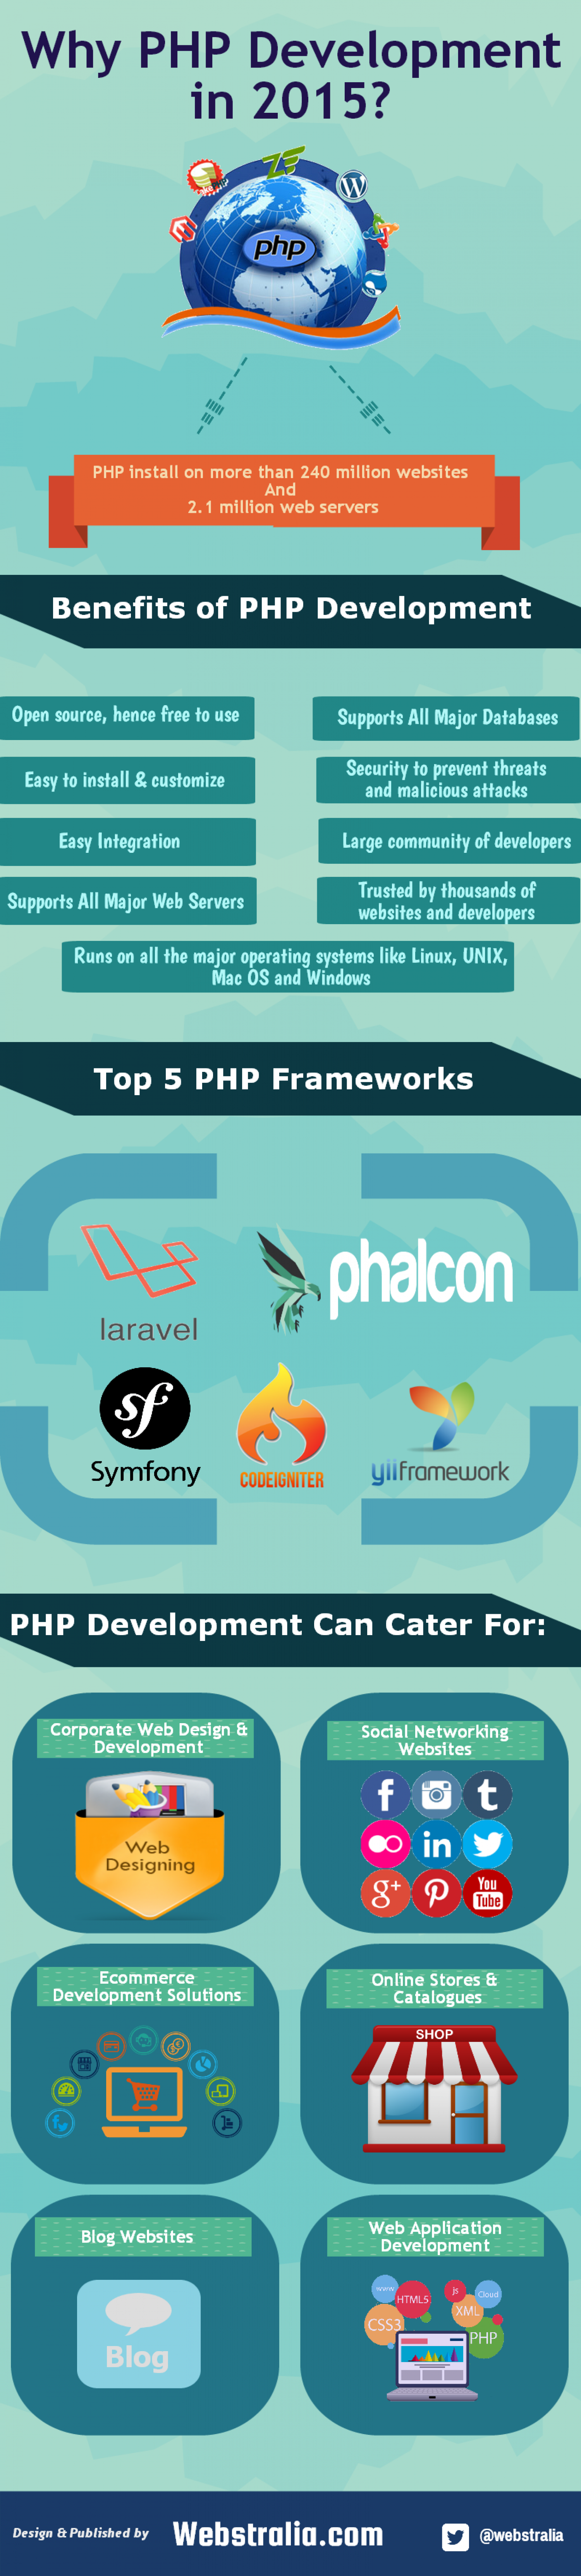 Why business need PHP Development in 2015? Infographic